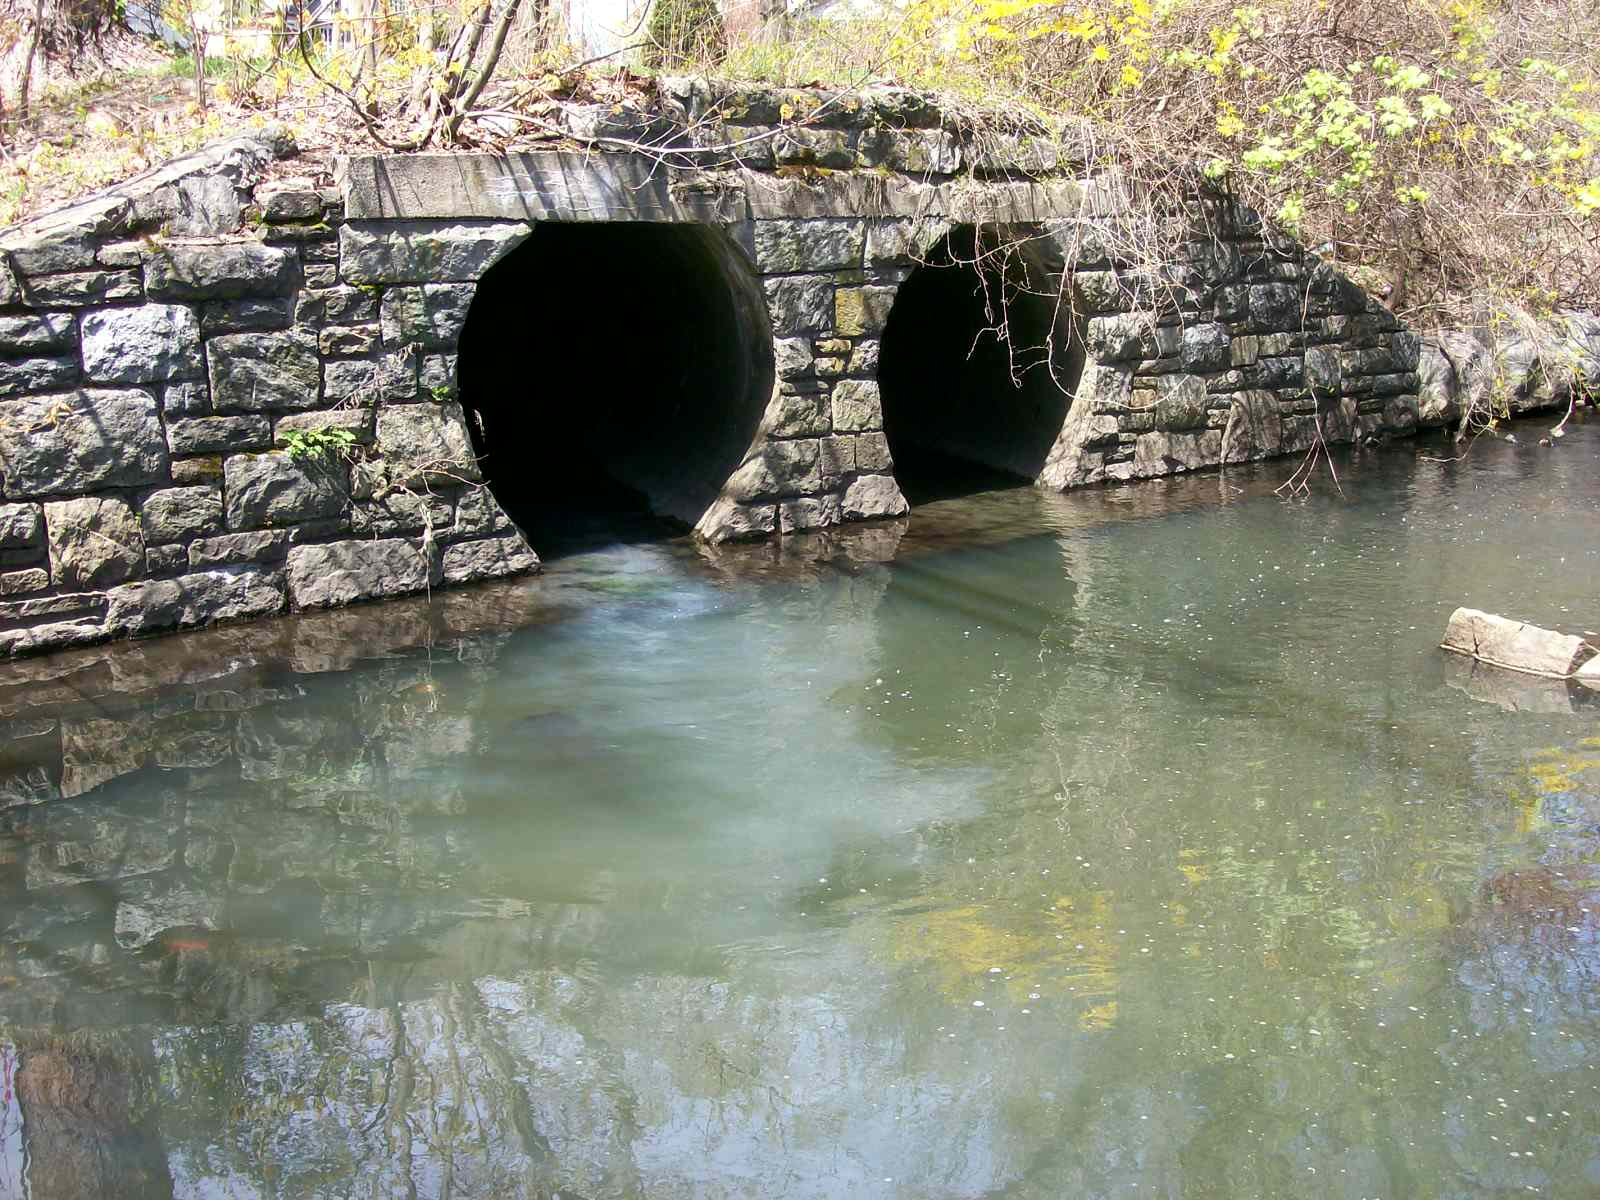 Mount Vernon Must Notify Public Of Sewage In Hutchinson